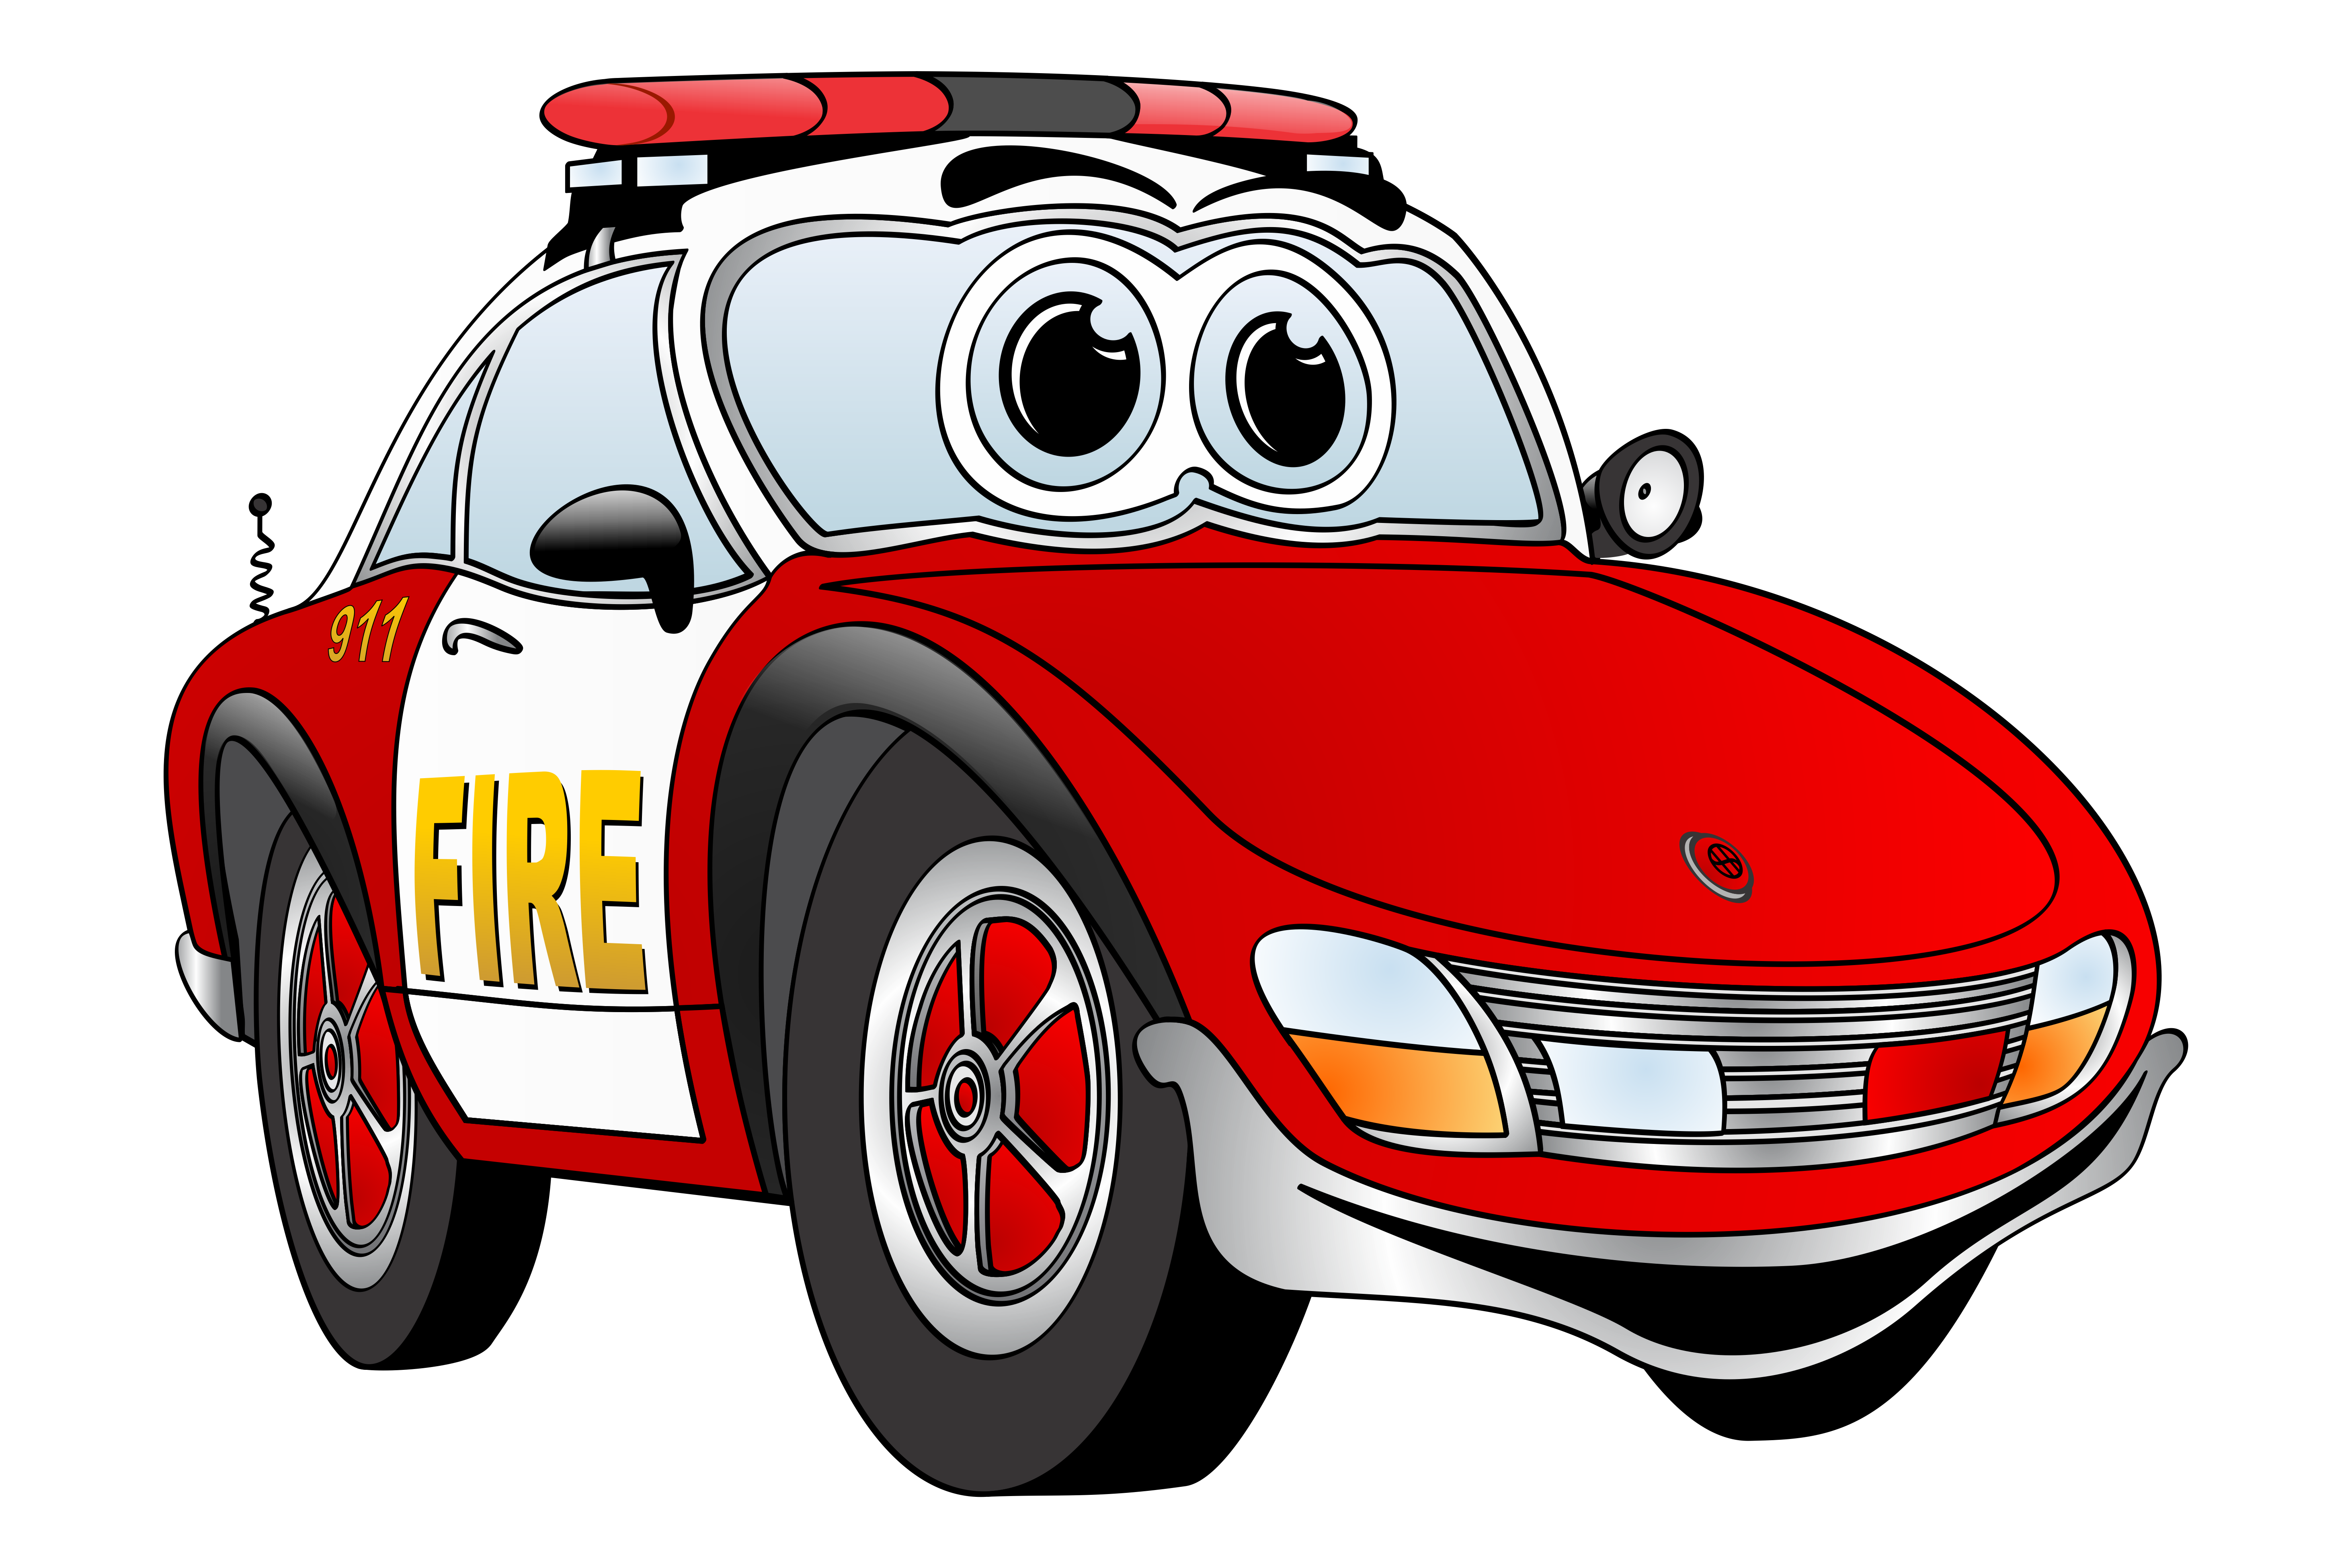 Free clipart images library download graphic library library Cartoon City On Fire | Clipart library - Free Clipart Images ... graphic library library